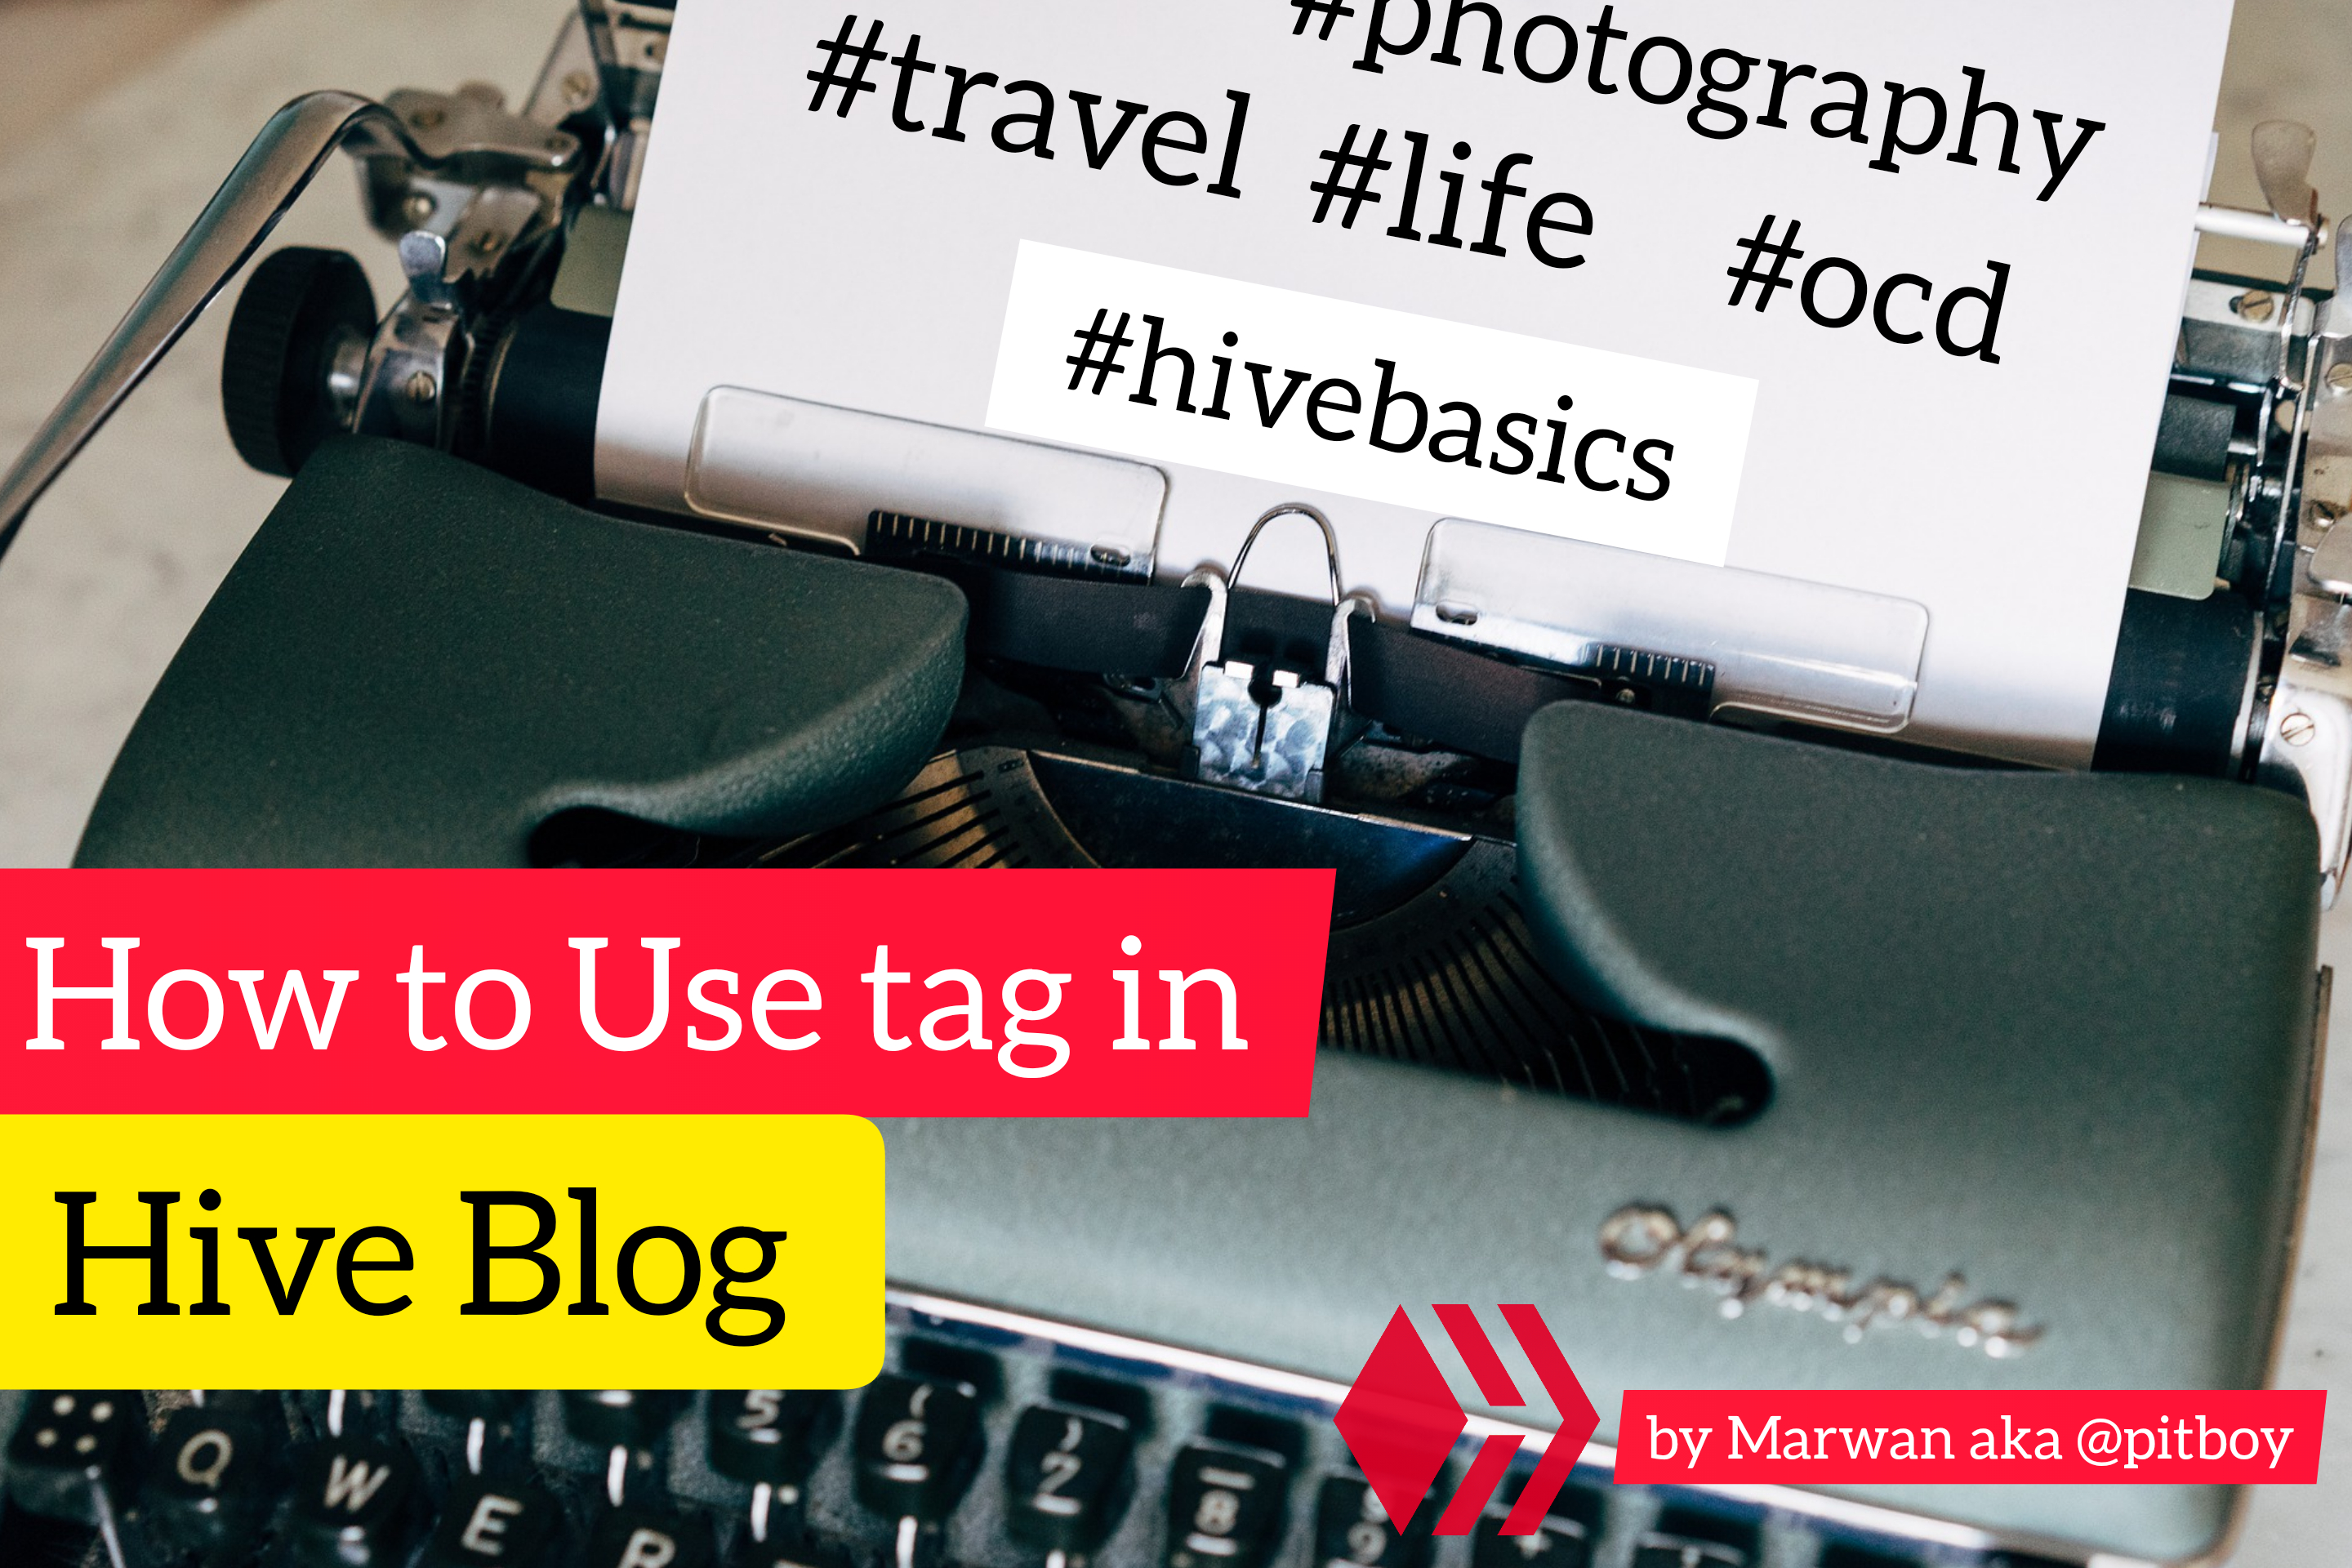 Tag in Hive Blog